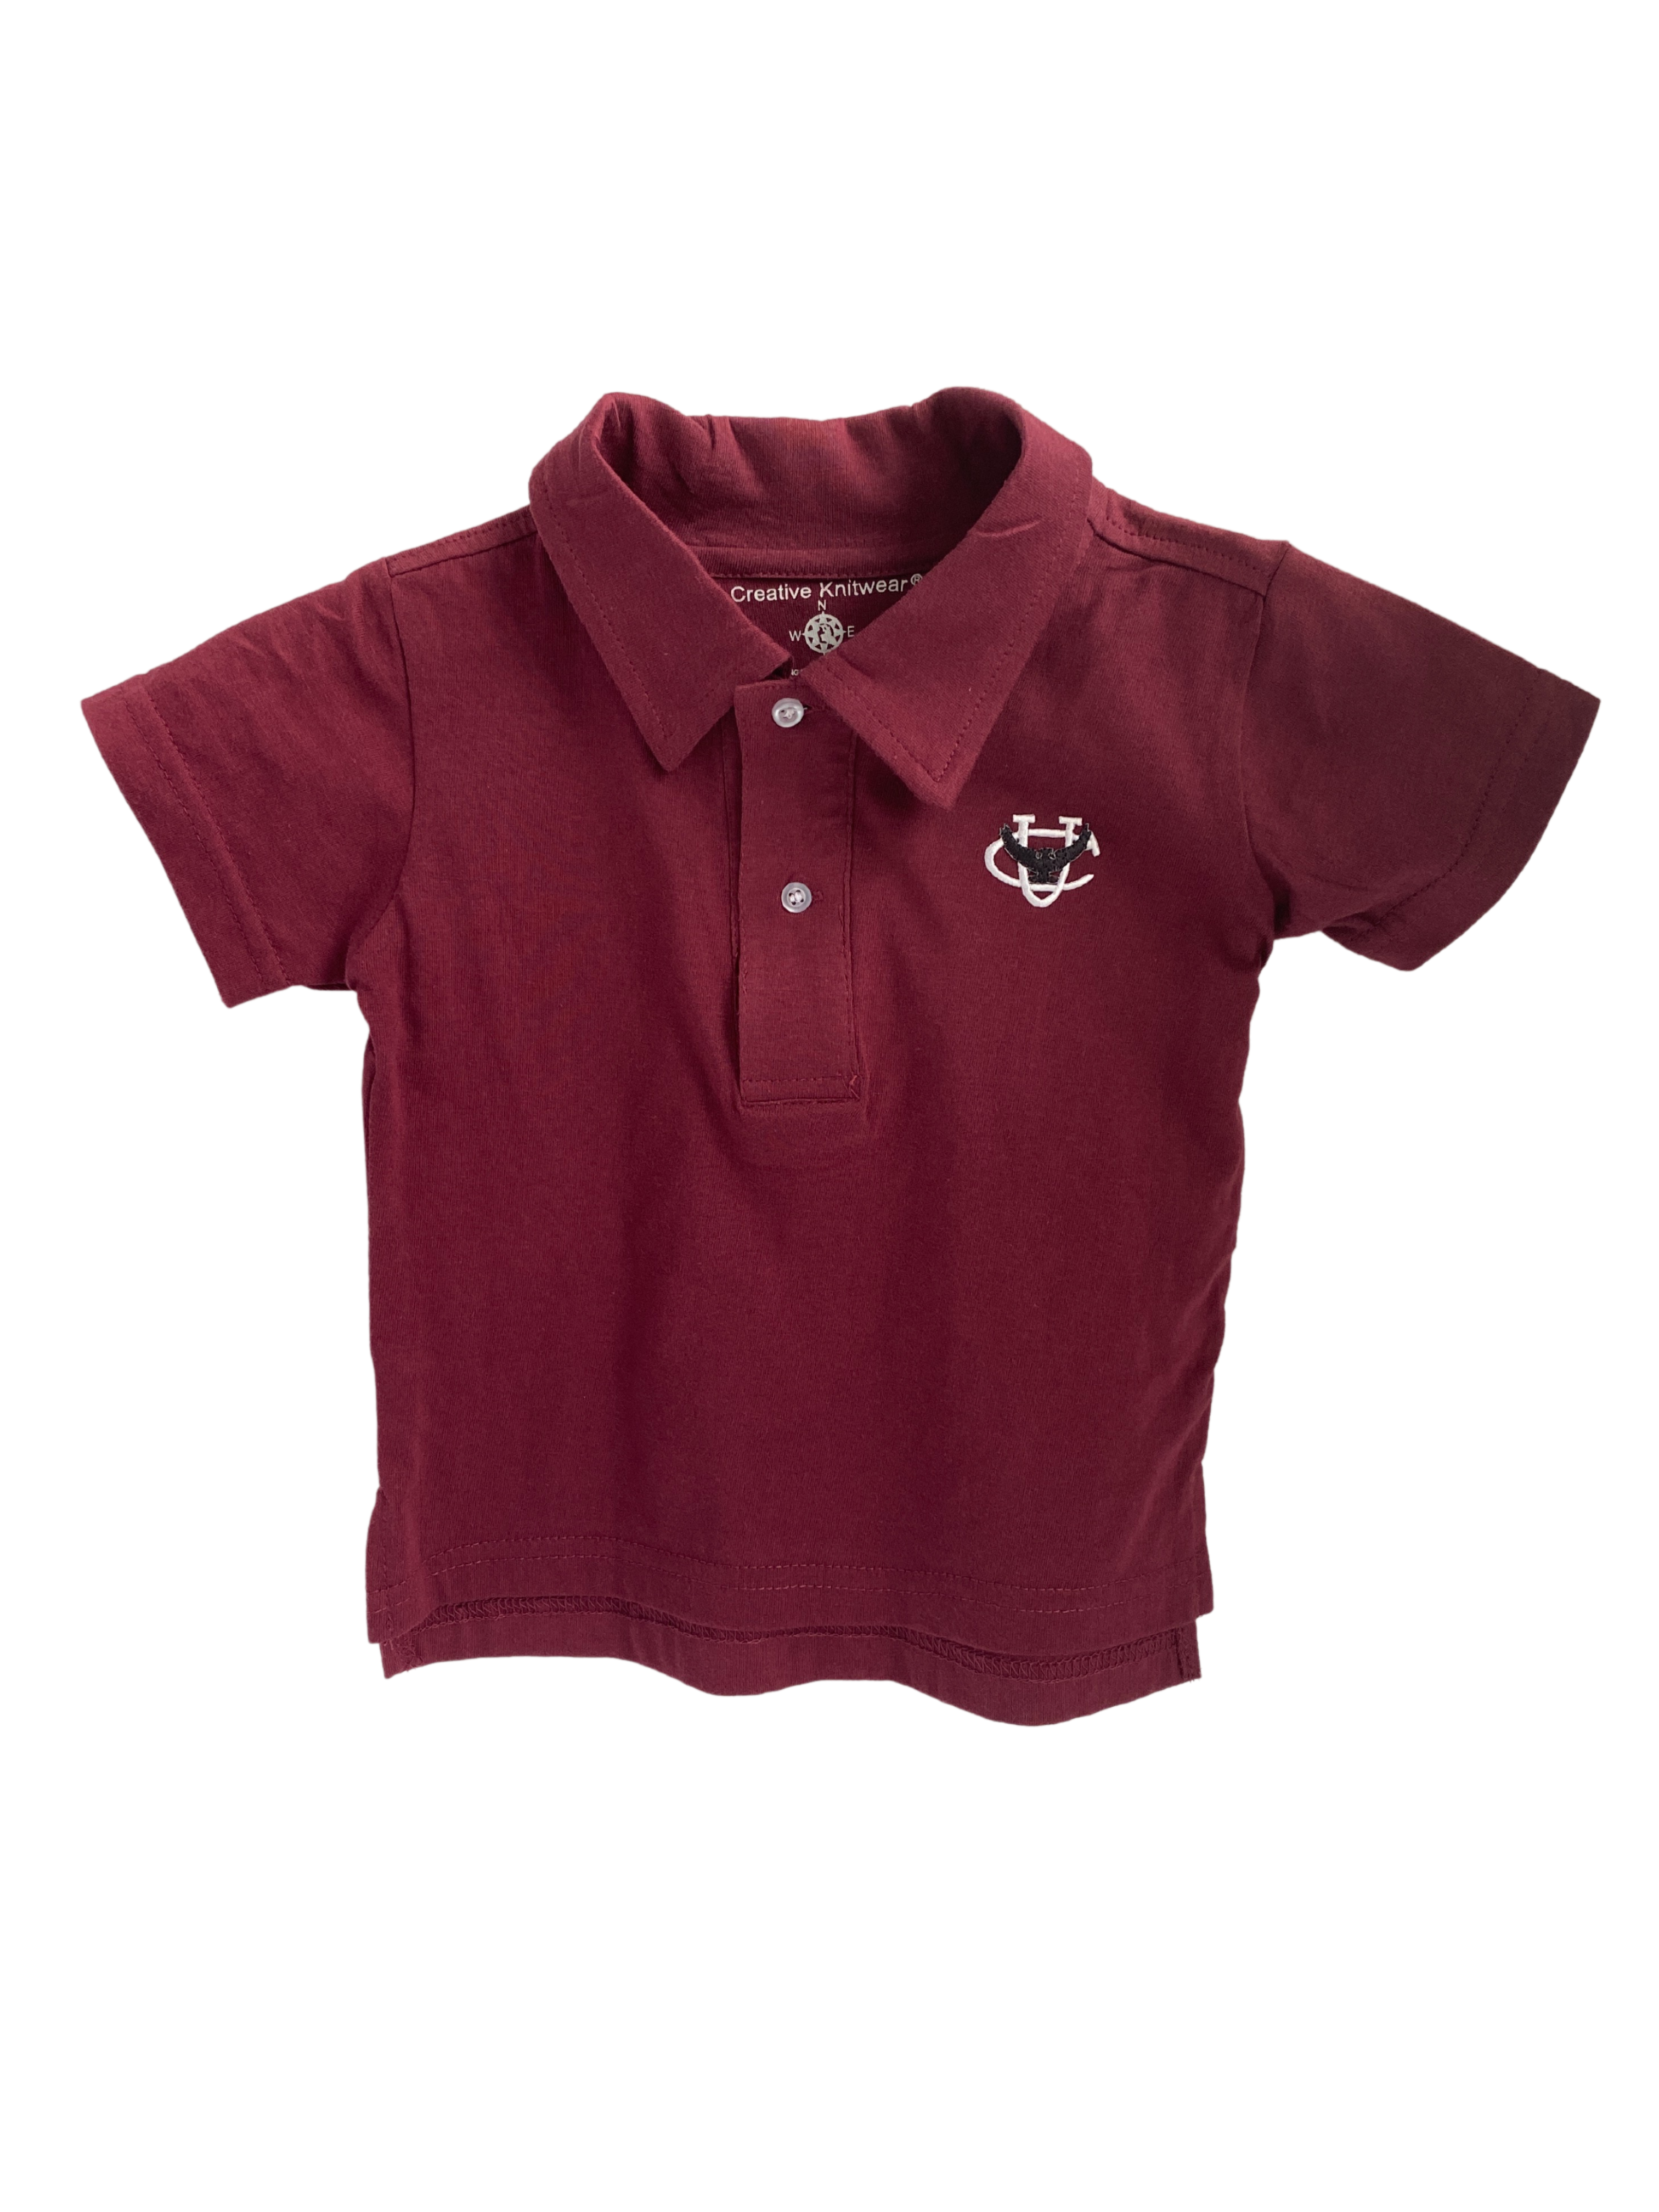 CU Old Logo Infant/Toddler Polo